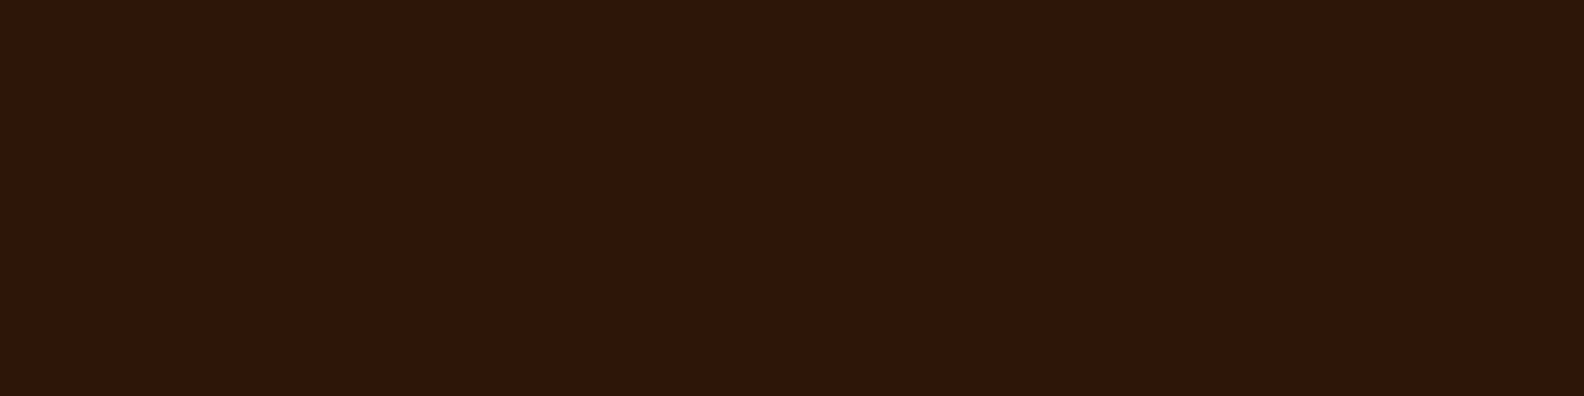 1584x396 Zinnwaldite Brown Solid Color Background